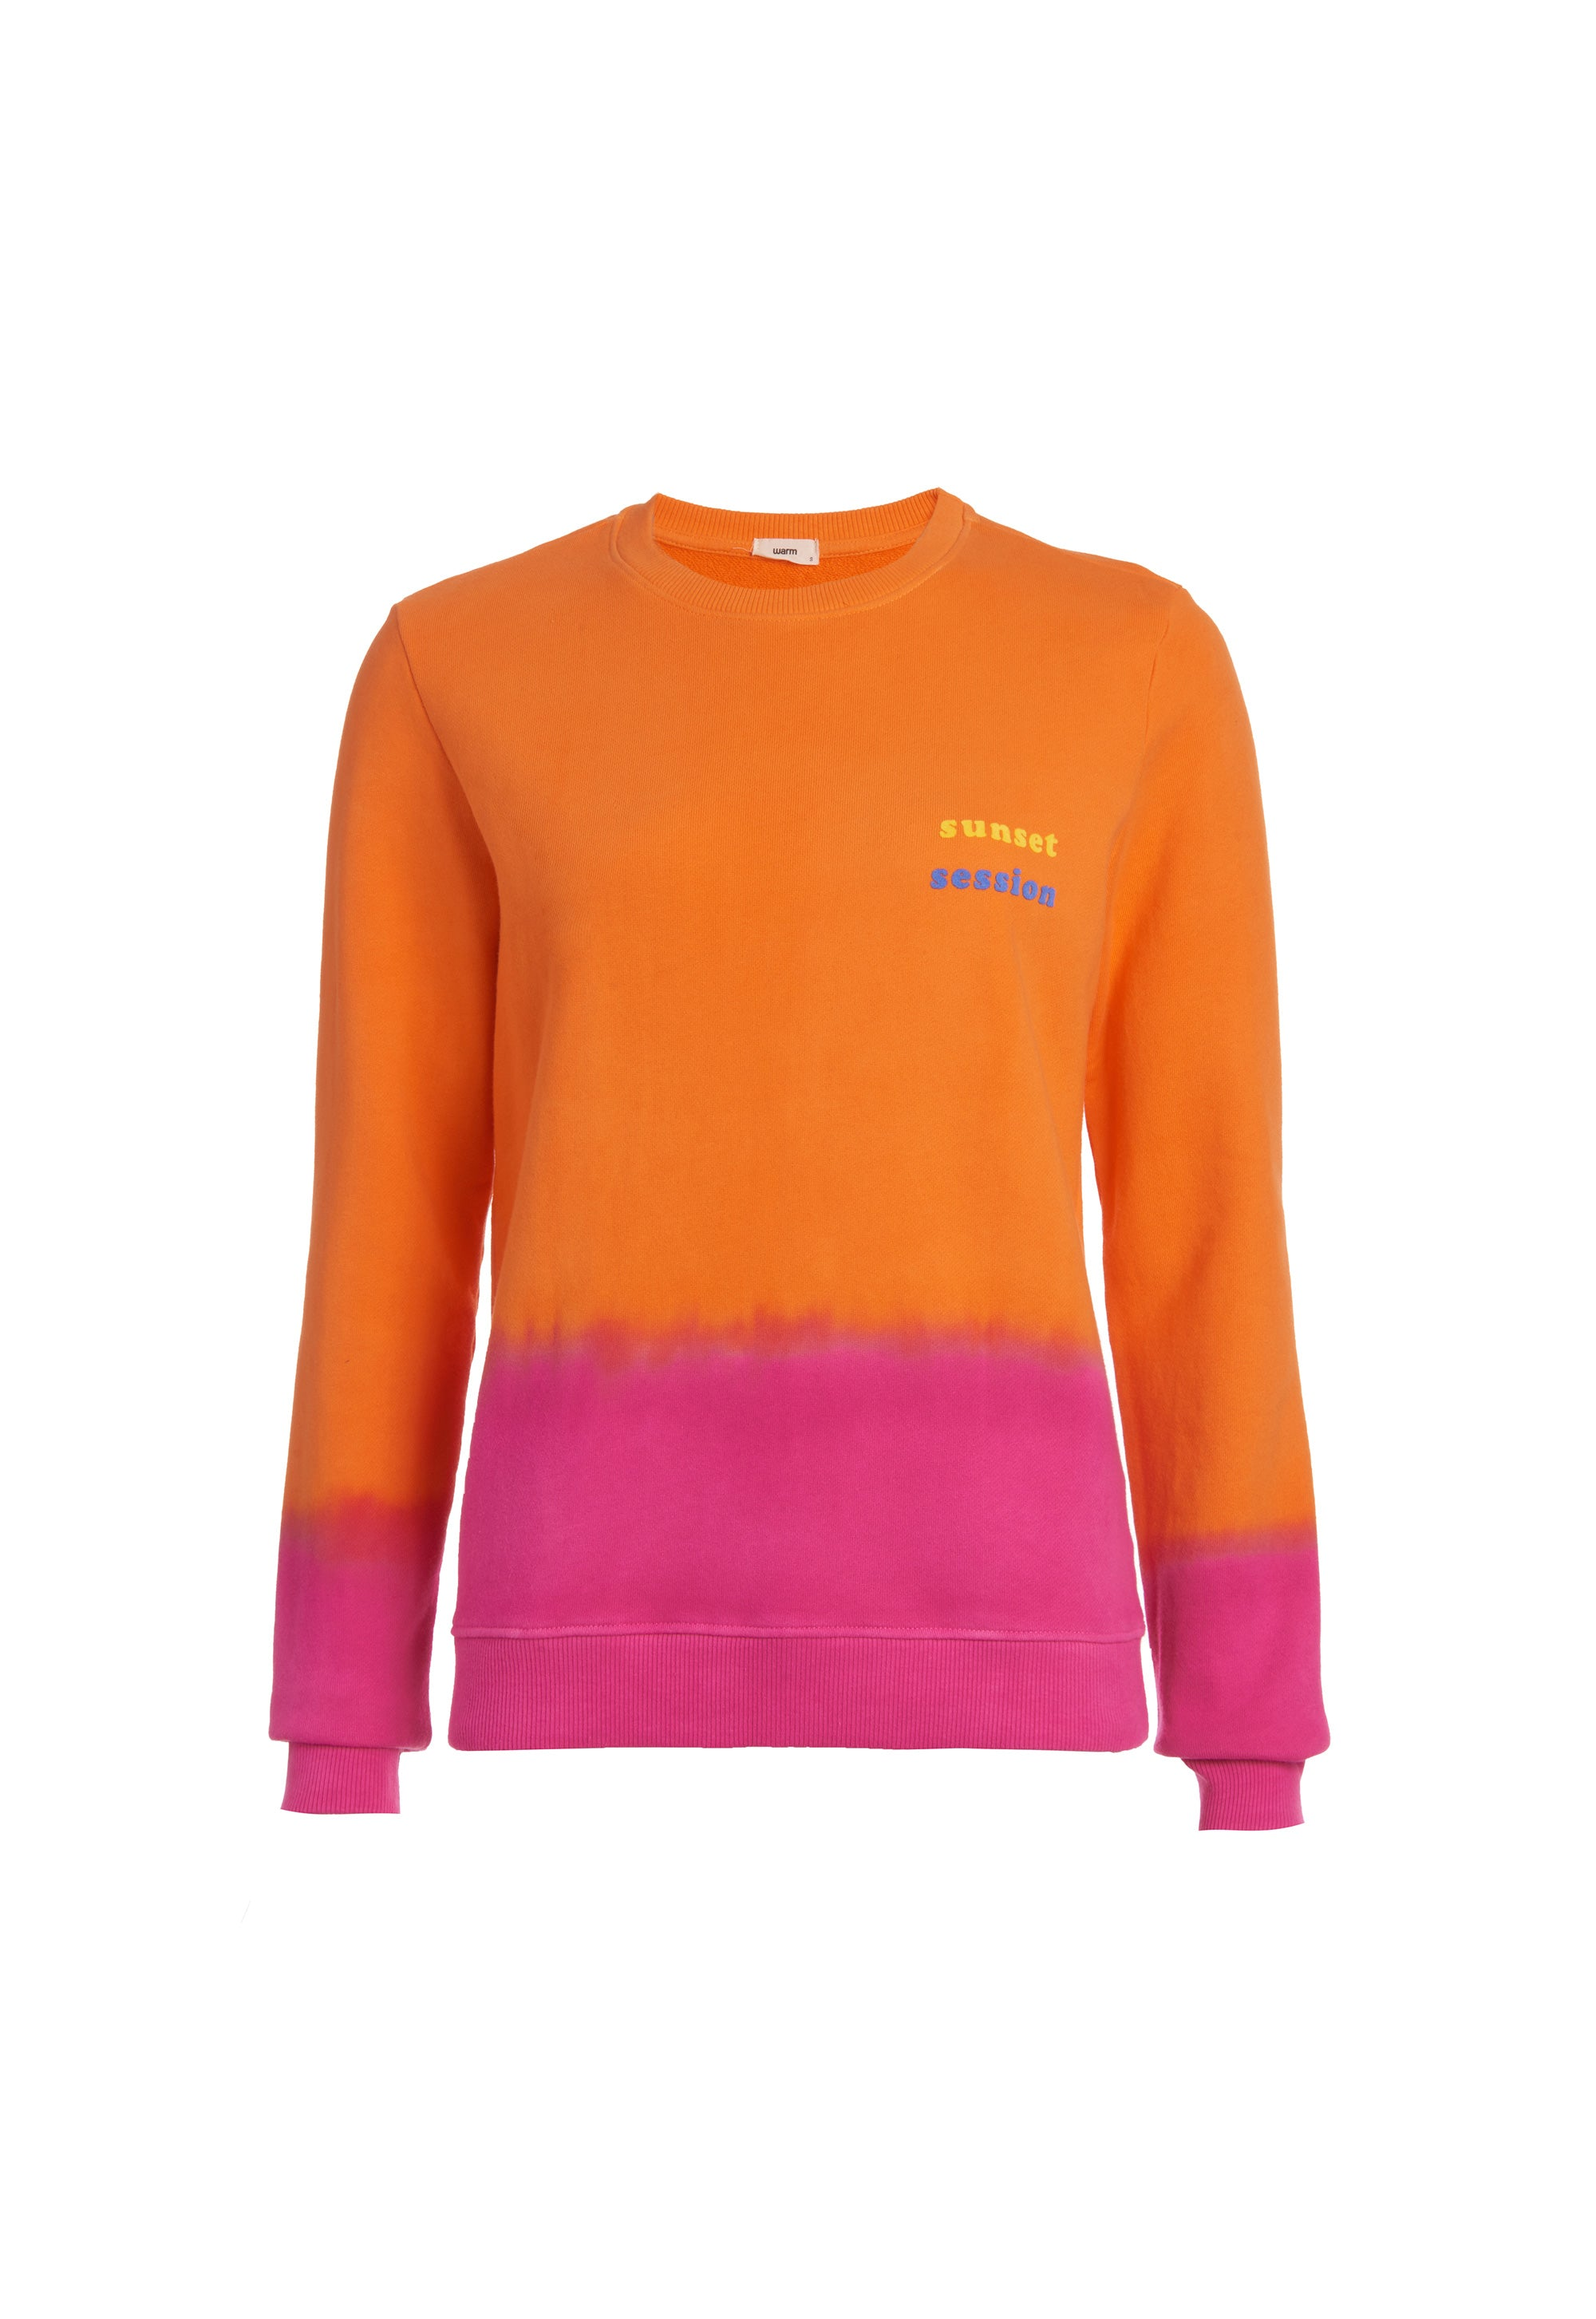 sunset session crewneck